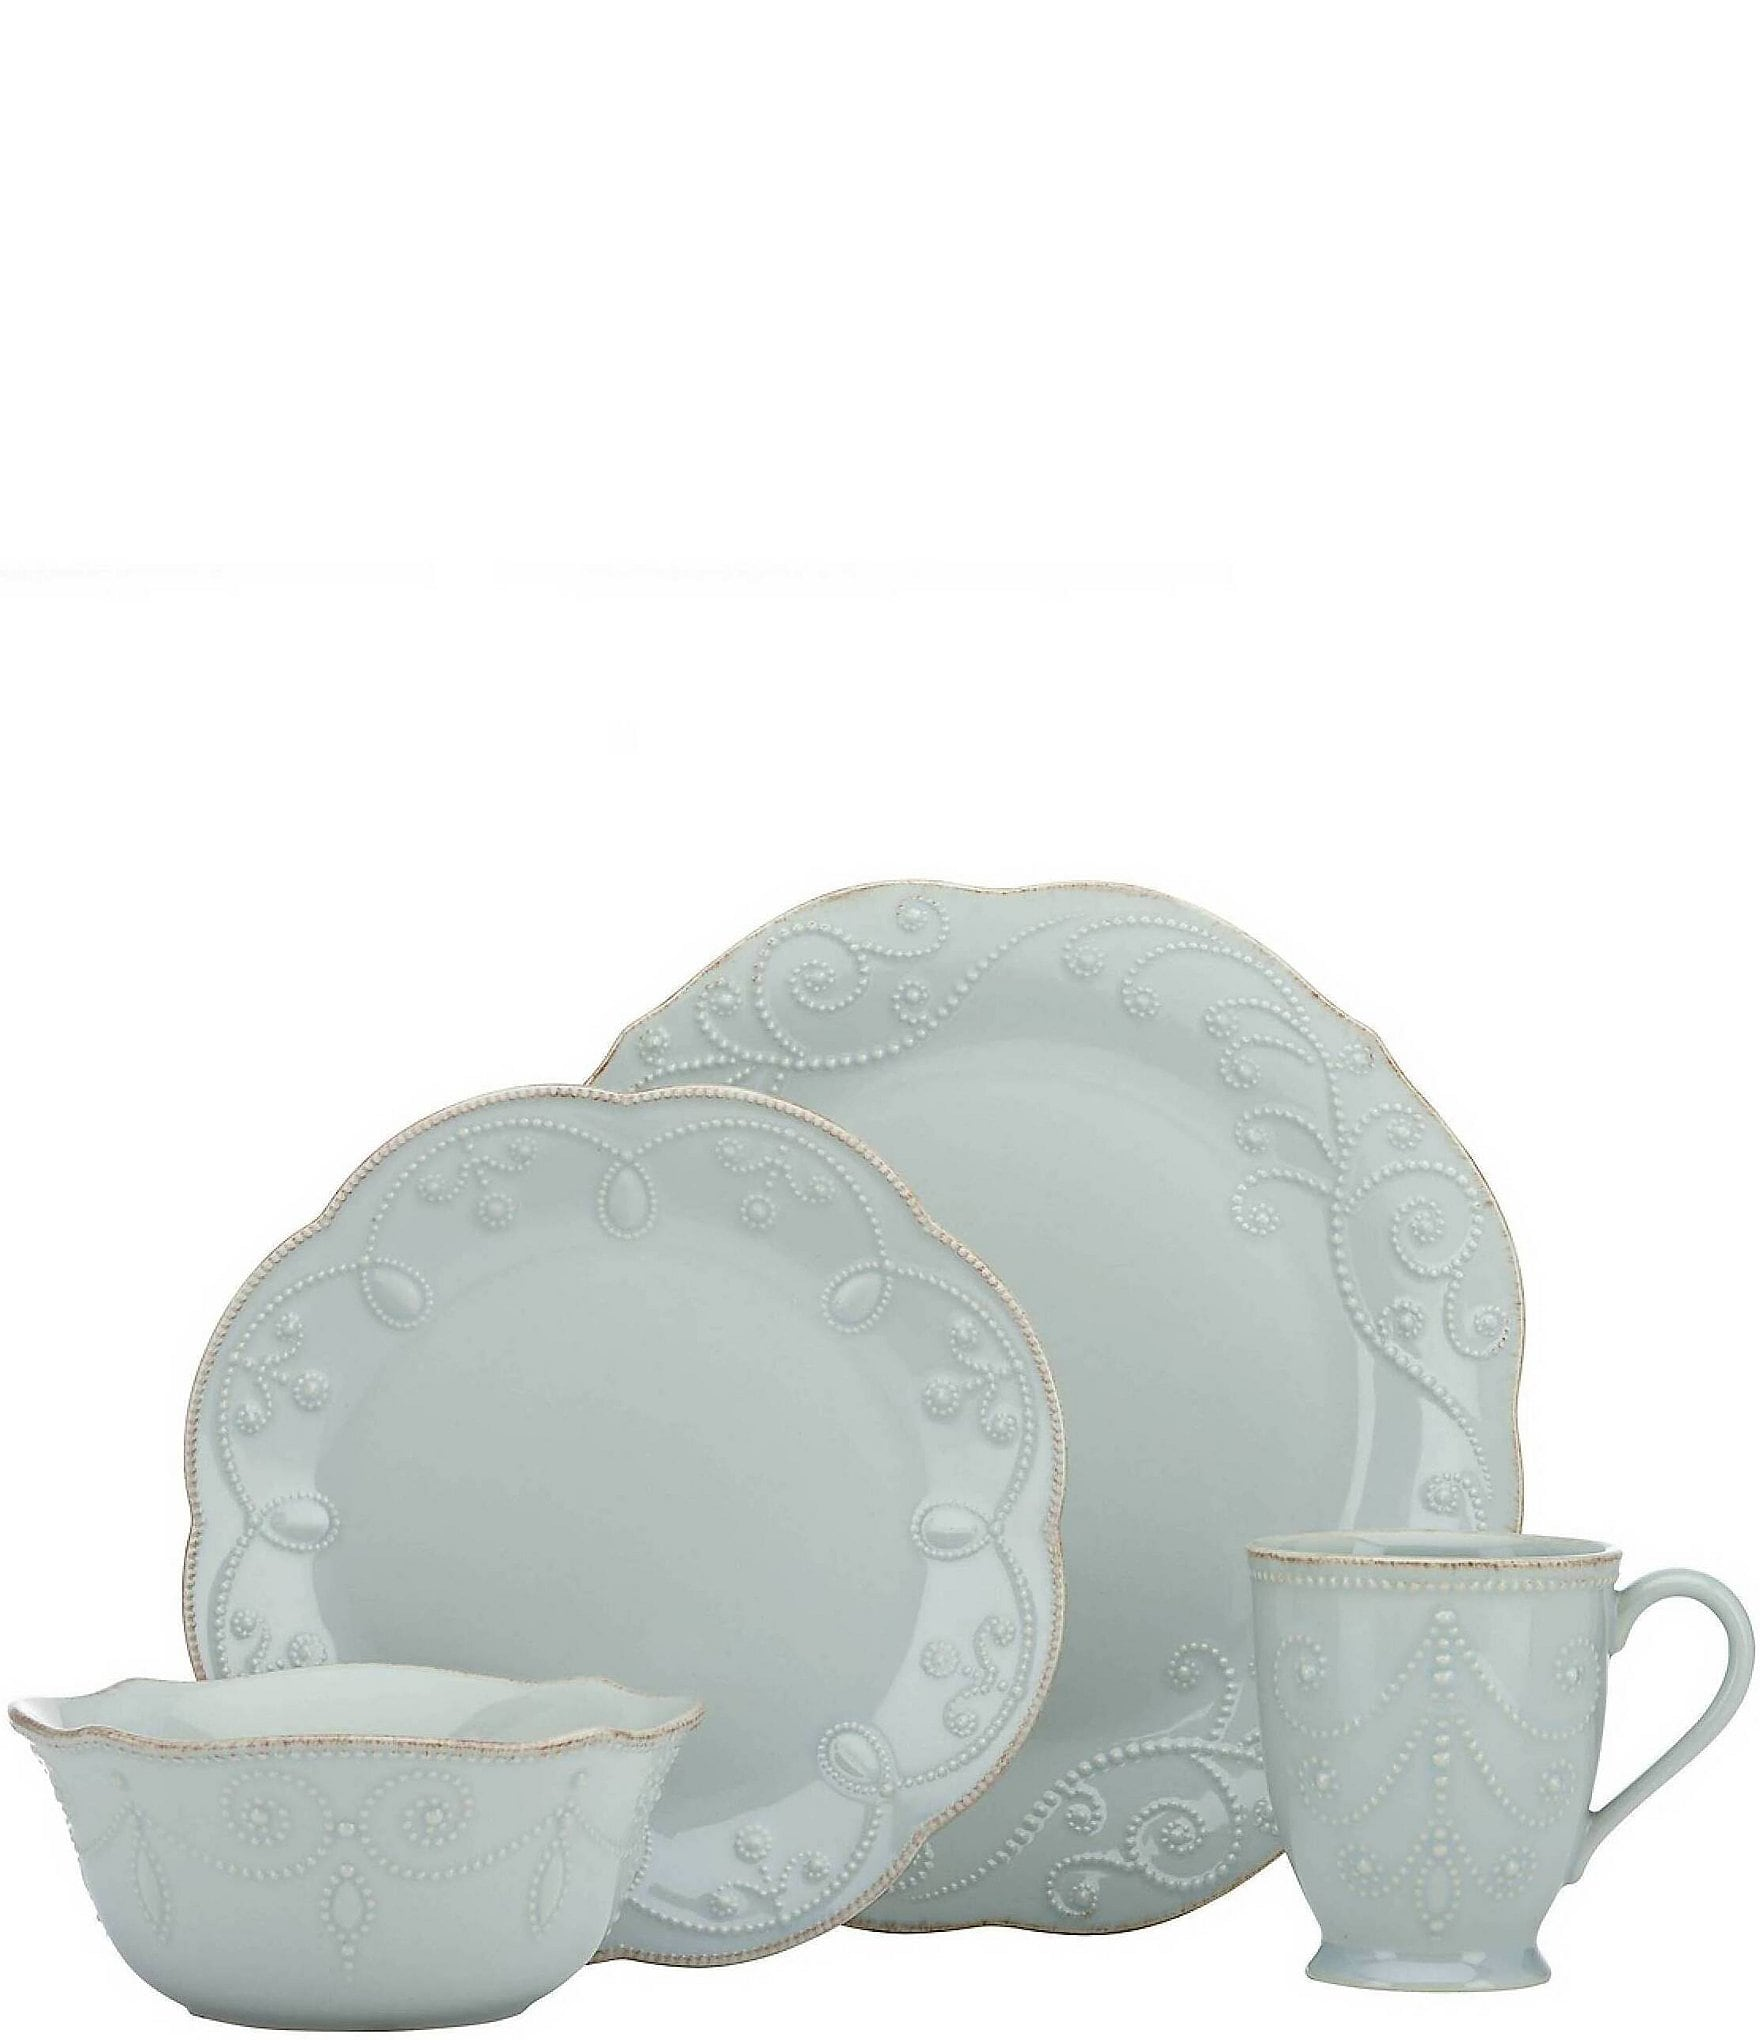 Famous White Casual Everyday Dinnerware: Plates , Dishes & Sets   Dillards DR66